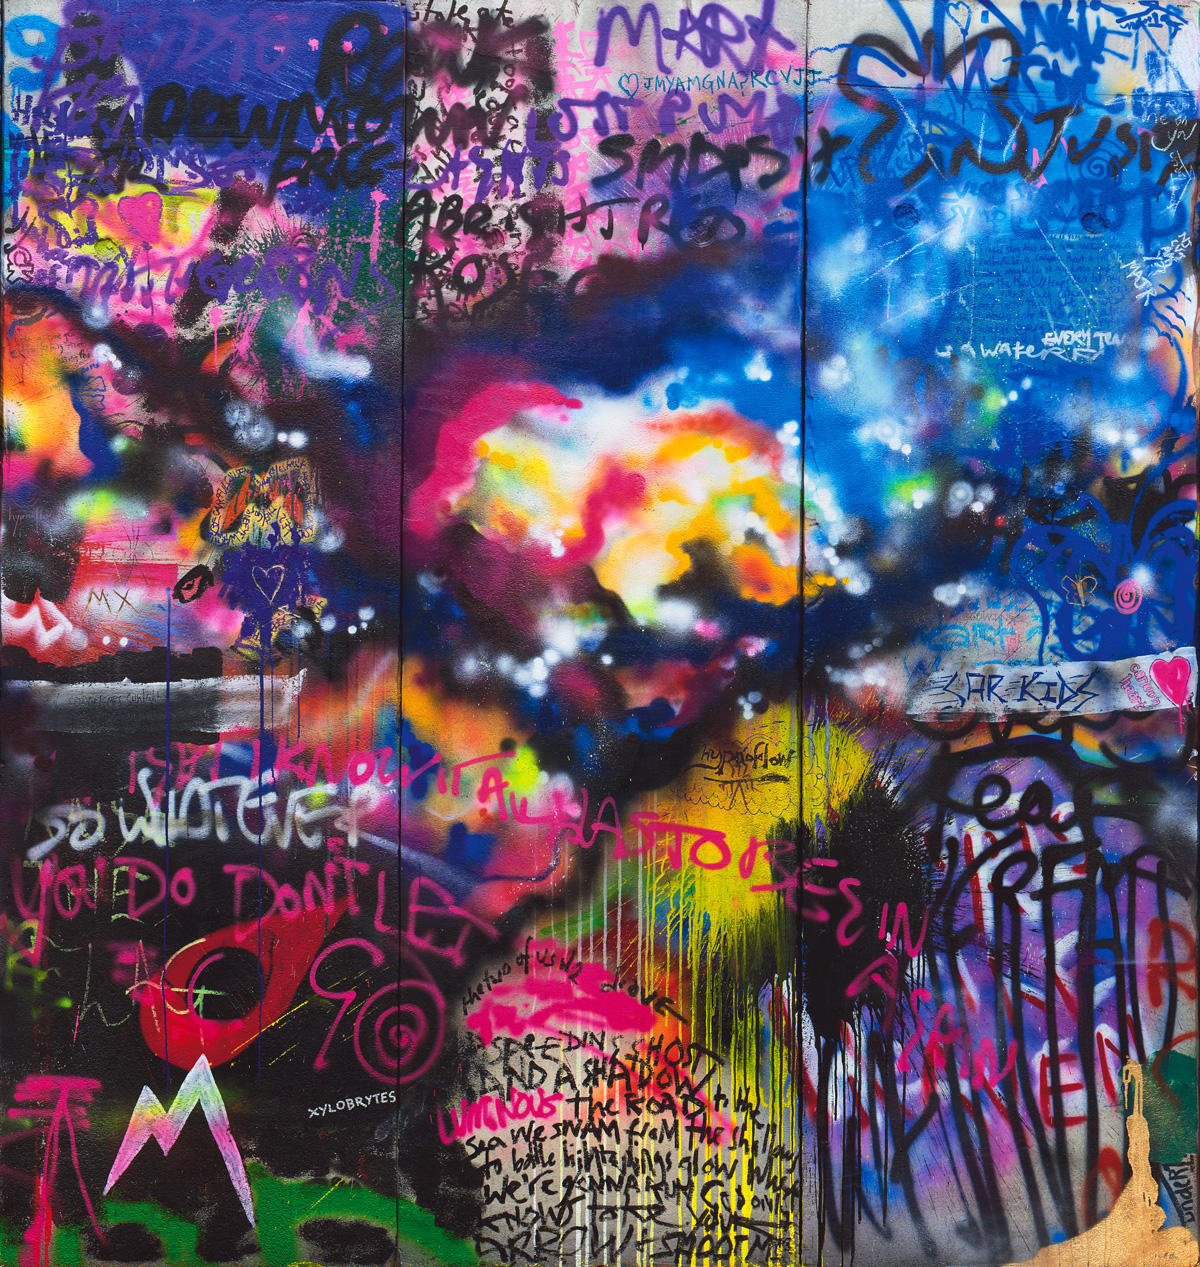 """Coldplay on Twitter: """"MYLO XYLOTO 2 BY PARIS & COLDPLAY ..."""